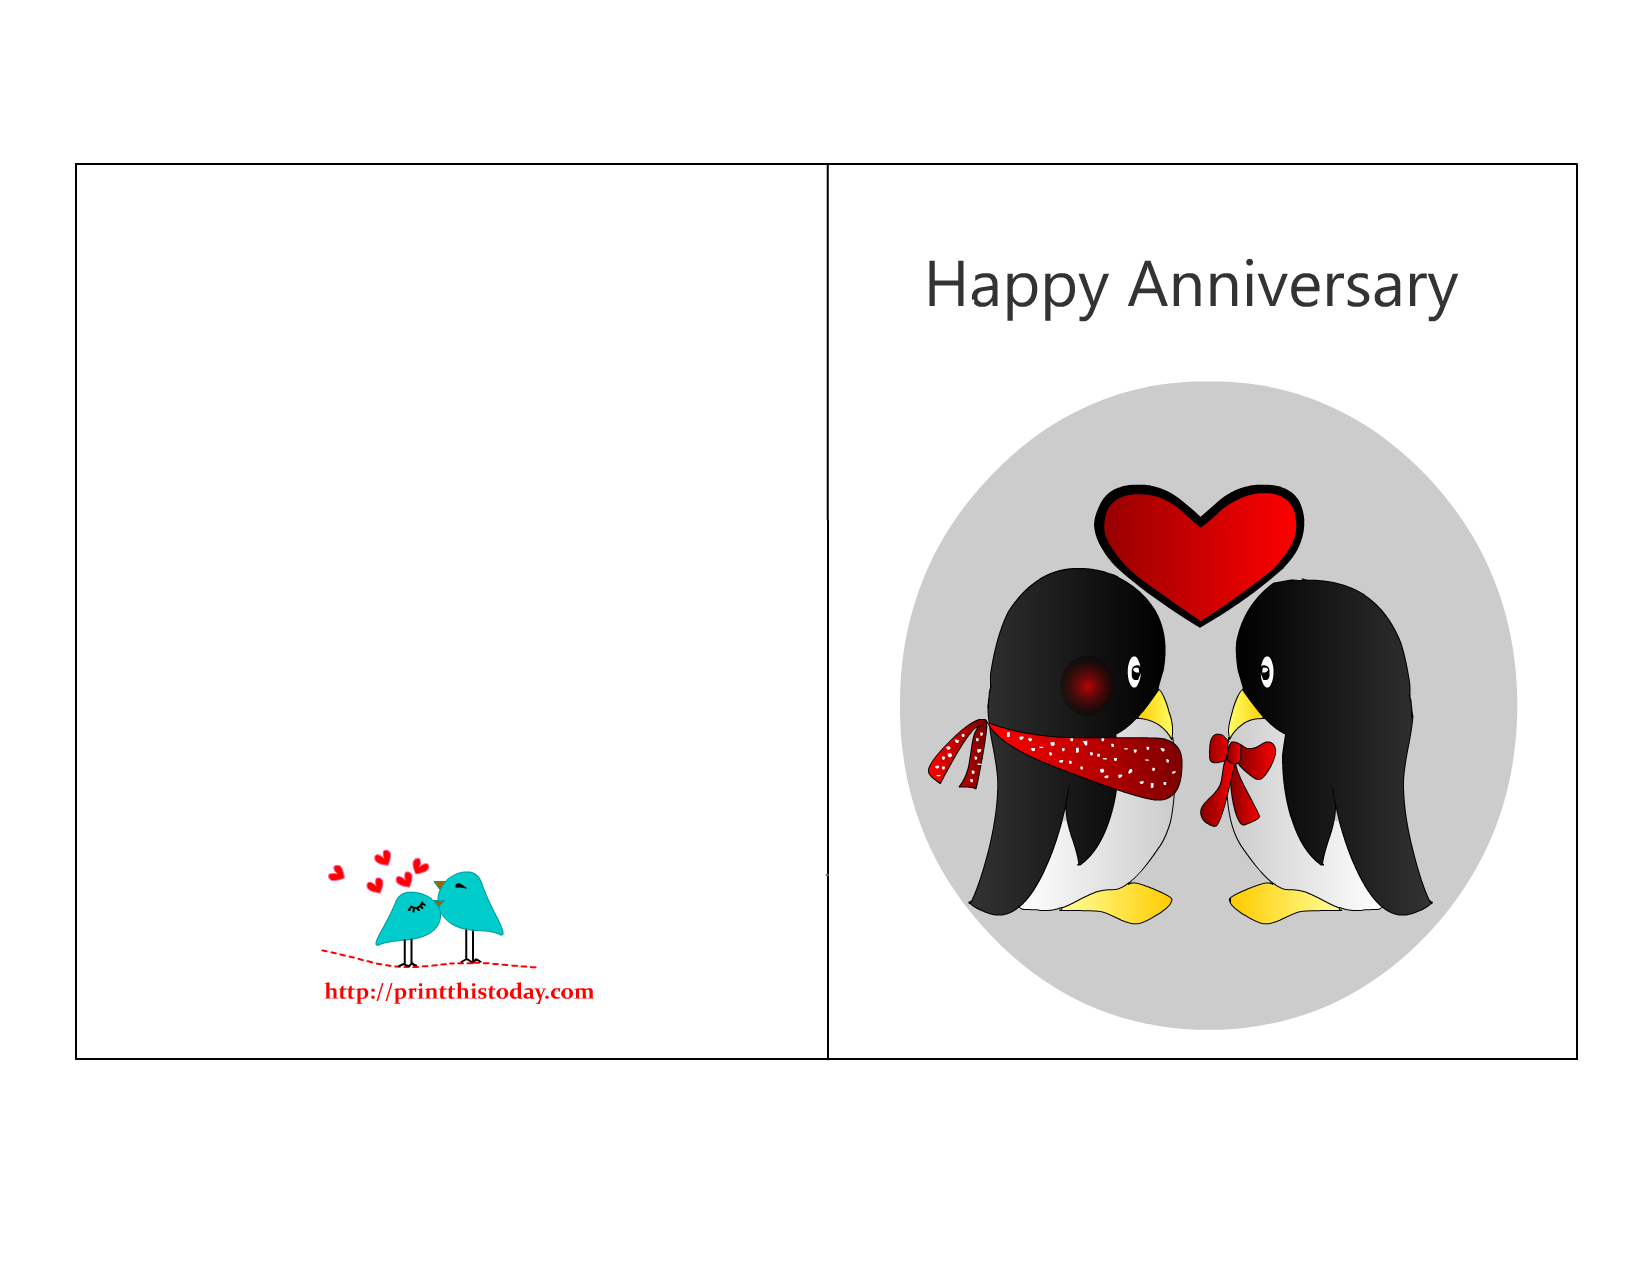 Stupendous image inside free printable anniversary cards for him